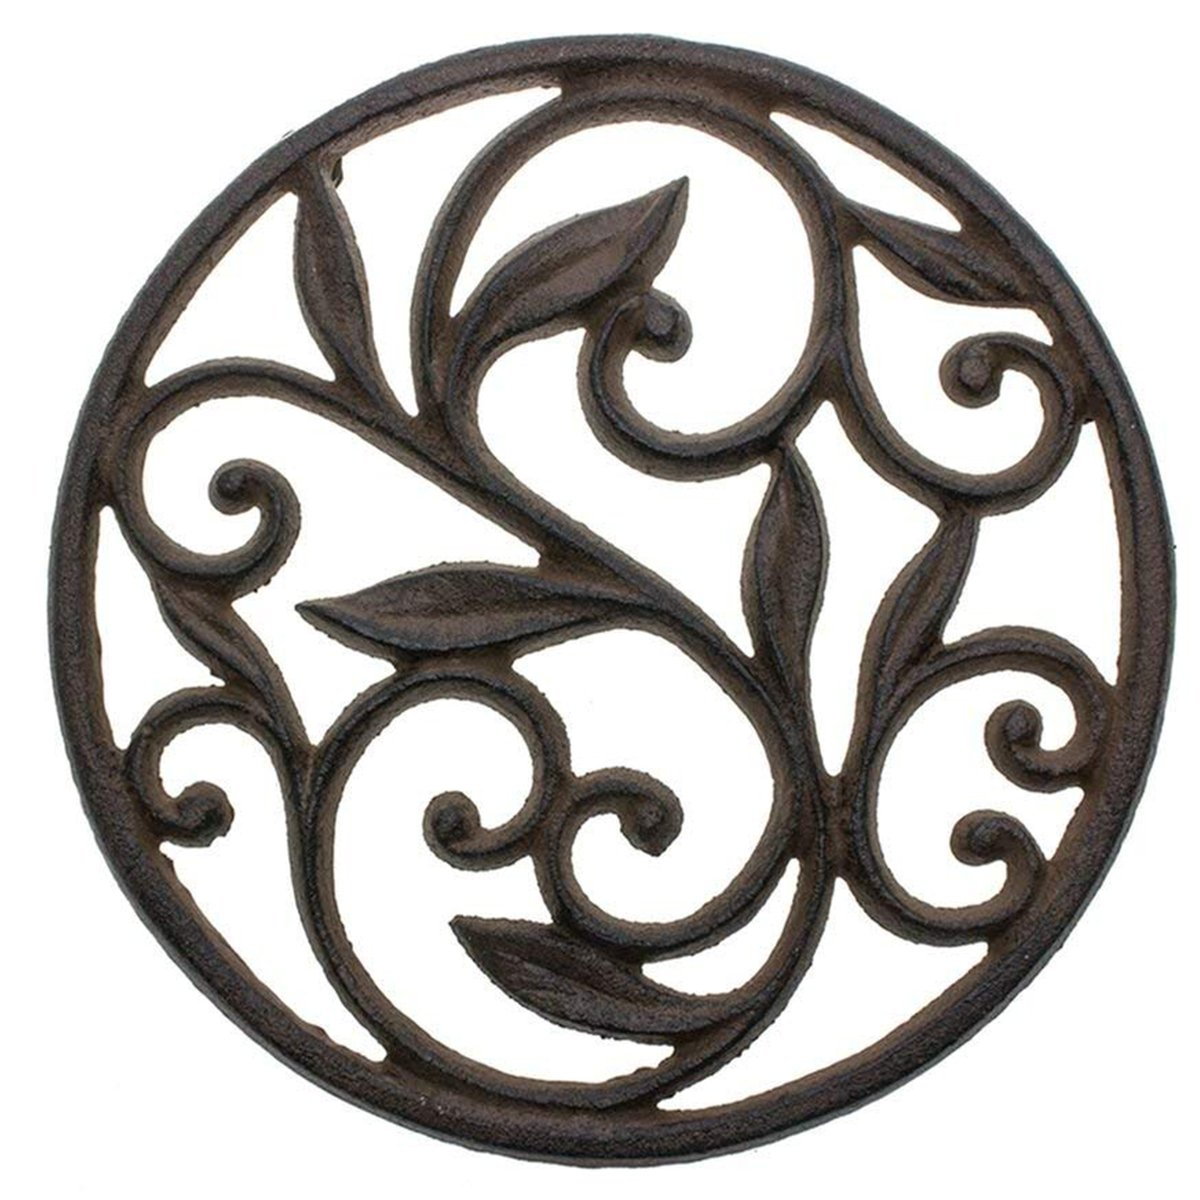 """Cast Iron Trivet - Round with Vintage Pattern - Decorative Cast Iron Trivet For Kitchen Or Dining Table - 7.7"""" Diameter - Rust Brown Color - With Rubber Pegs by Comfify"""